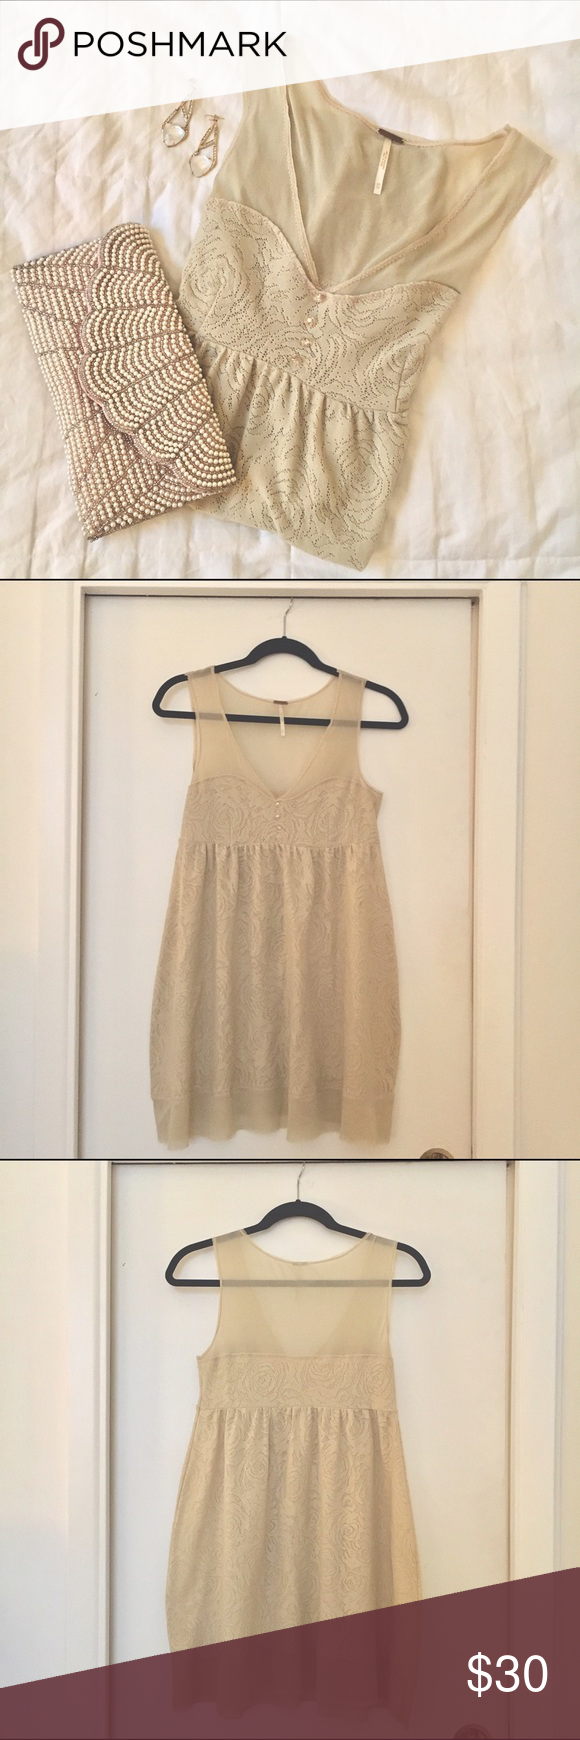 Free People Lace Babydoll Dress Delicate lace dress, gently used, great condition ♡♡ Free People Dresses Mini